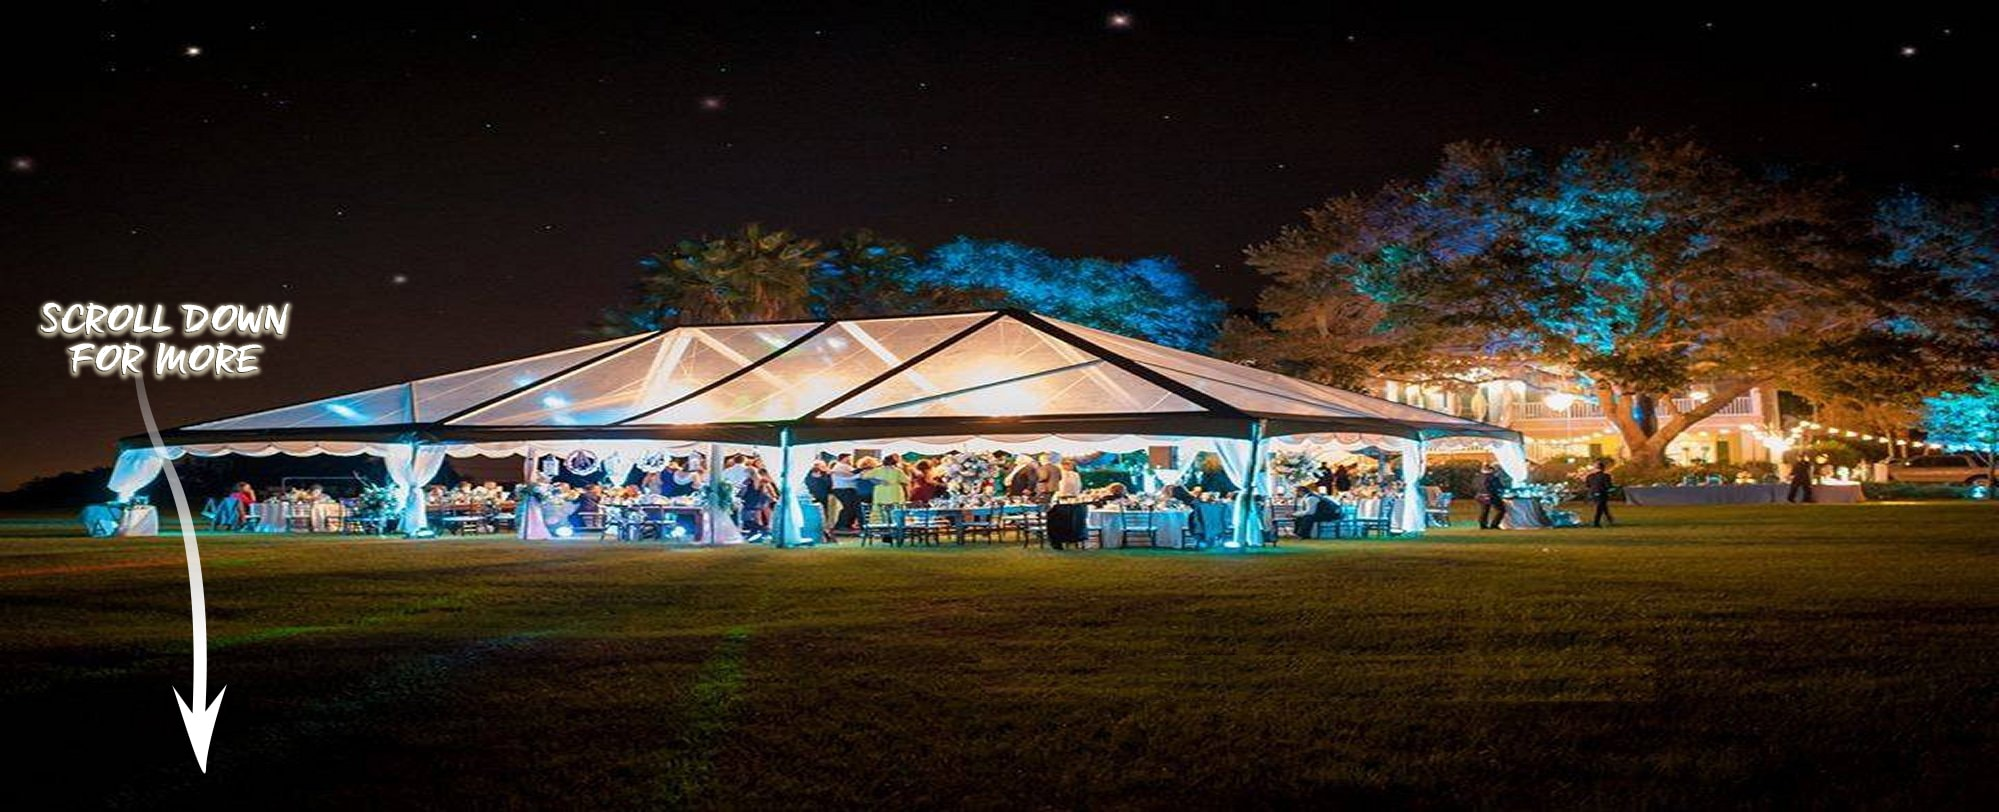 When you have your wedding at one of our homes, we provide referrals for tents, tables, chairs, catering, and more